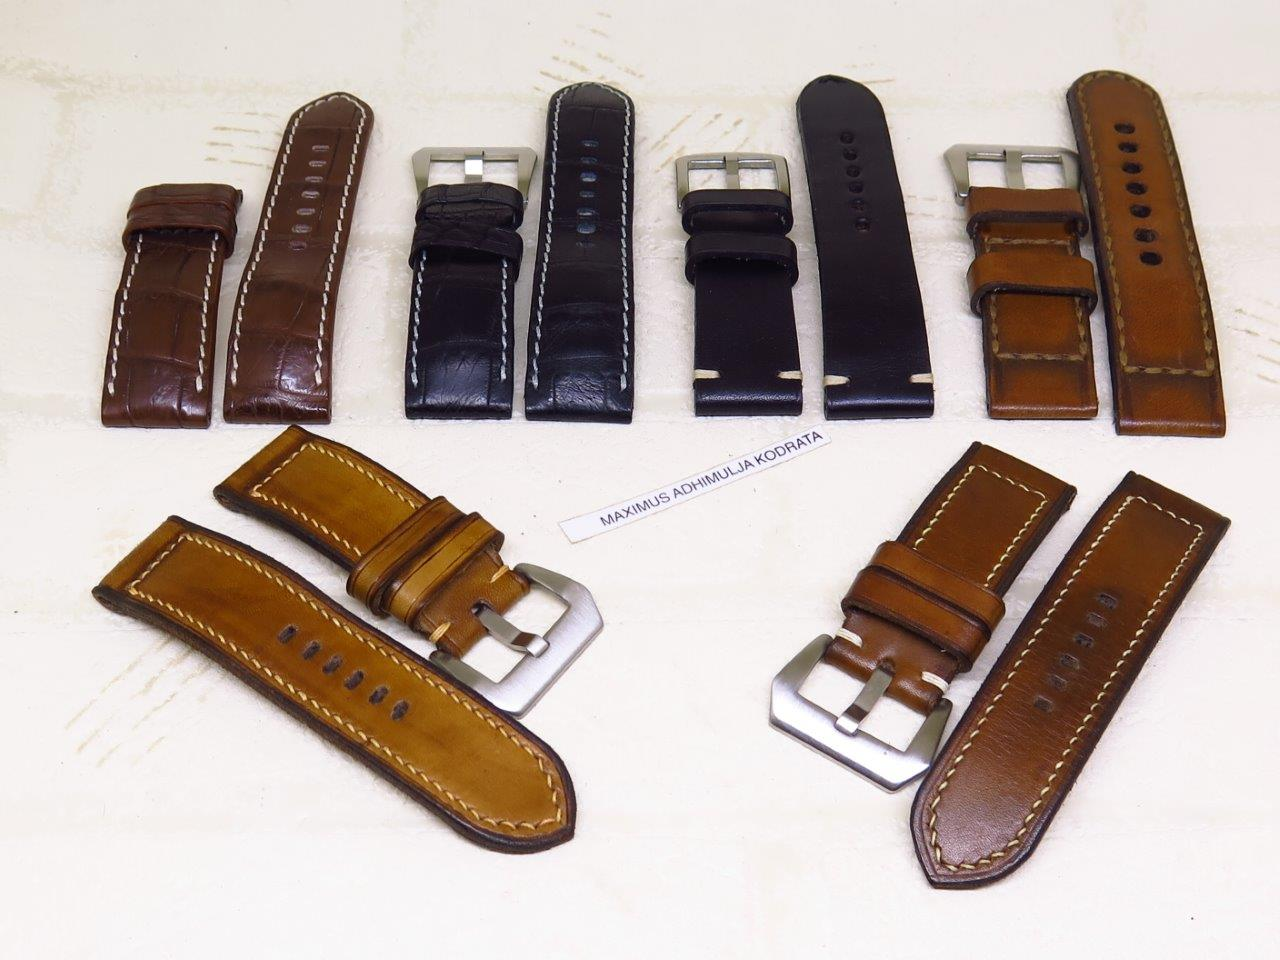 STRAP-STRAPS OF THE DAY 24mm